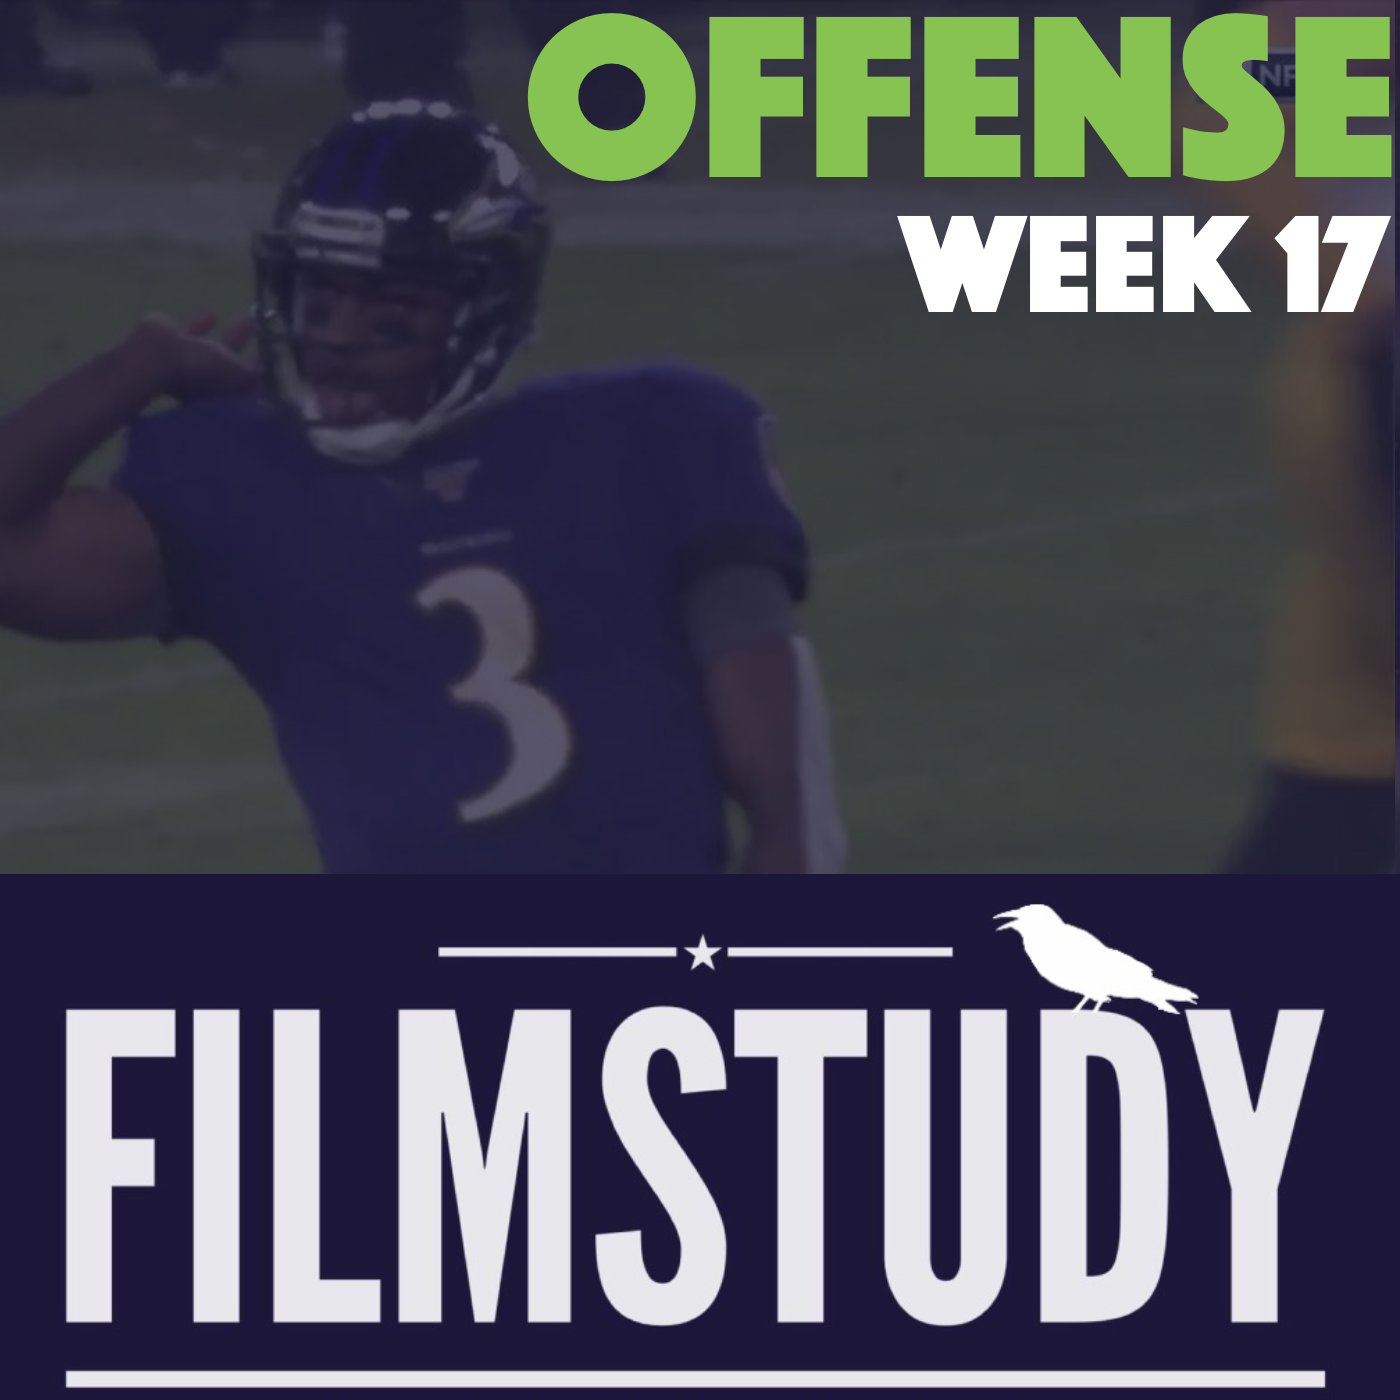 Offense Notes : Steelers @ Ravens Week 17